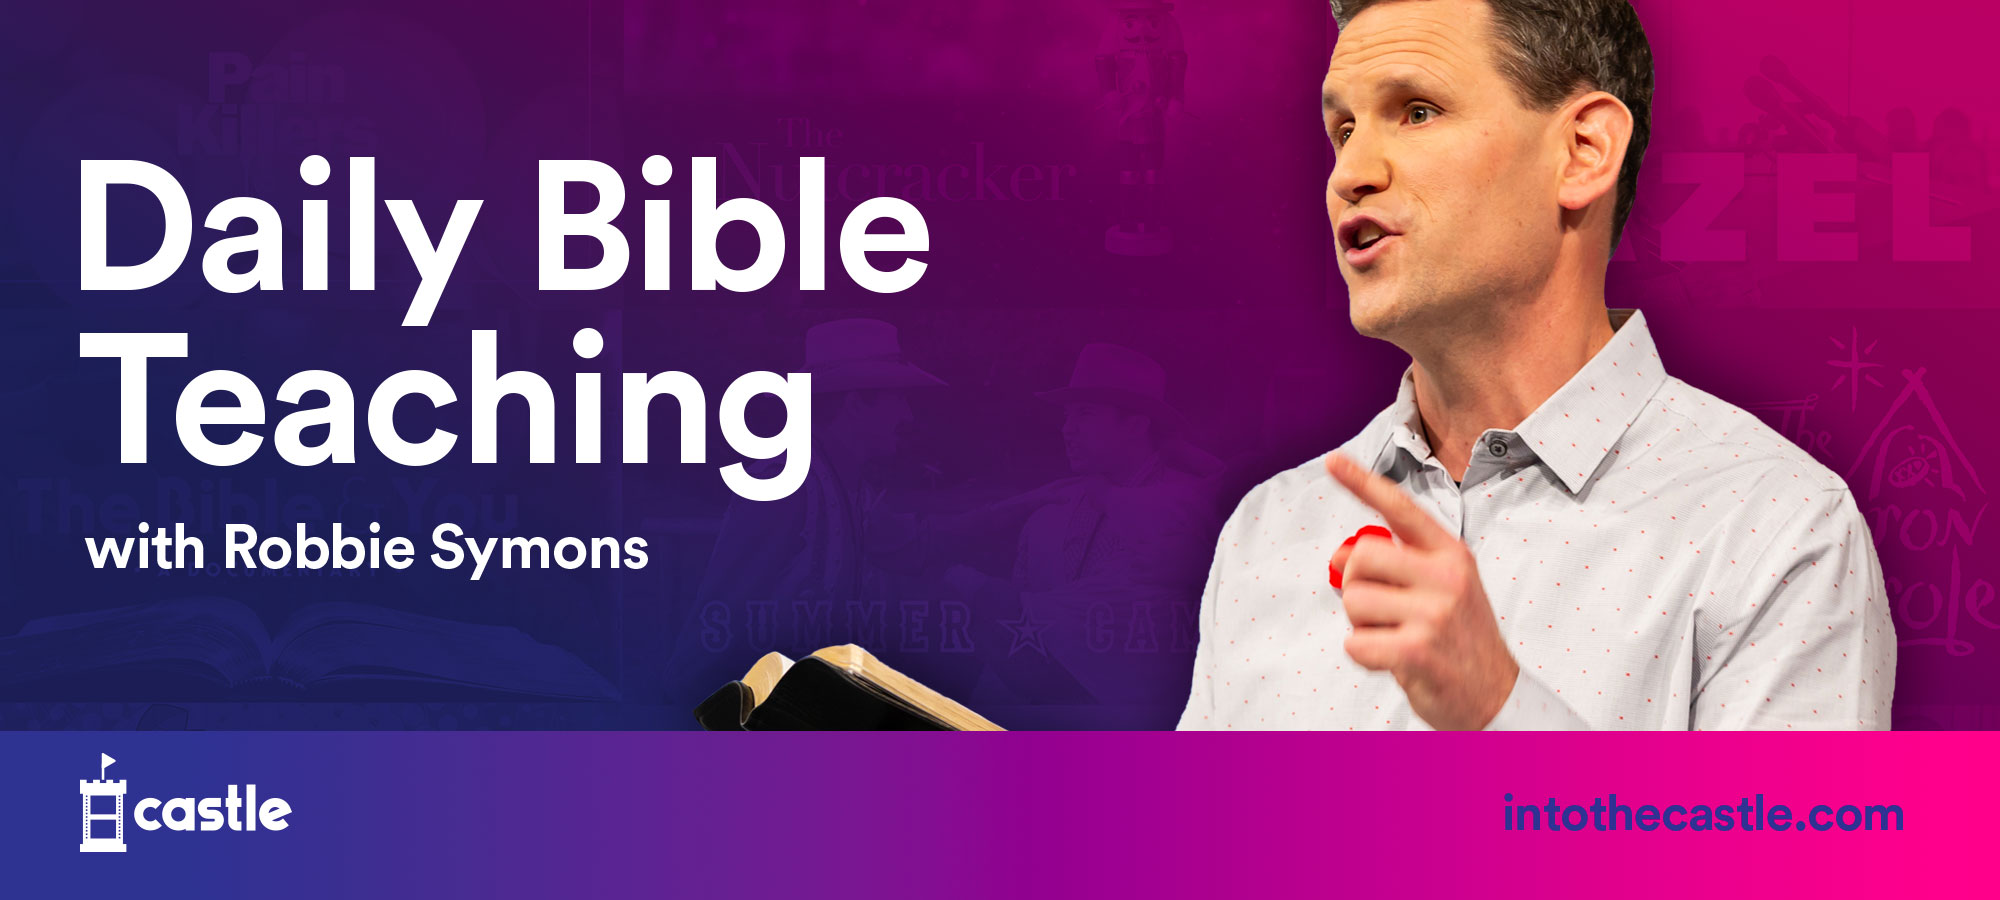 Daily Bible Teachings with Robbie Symons